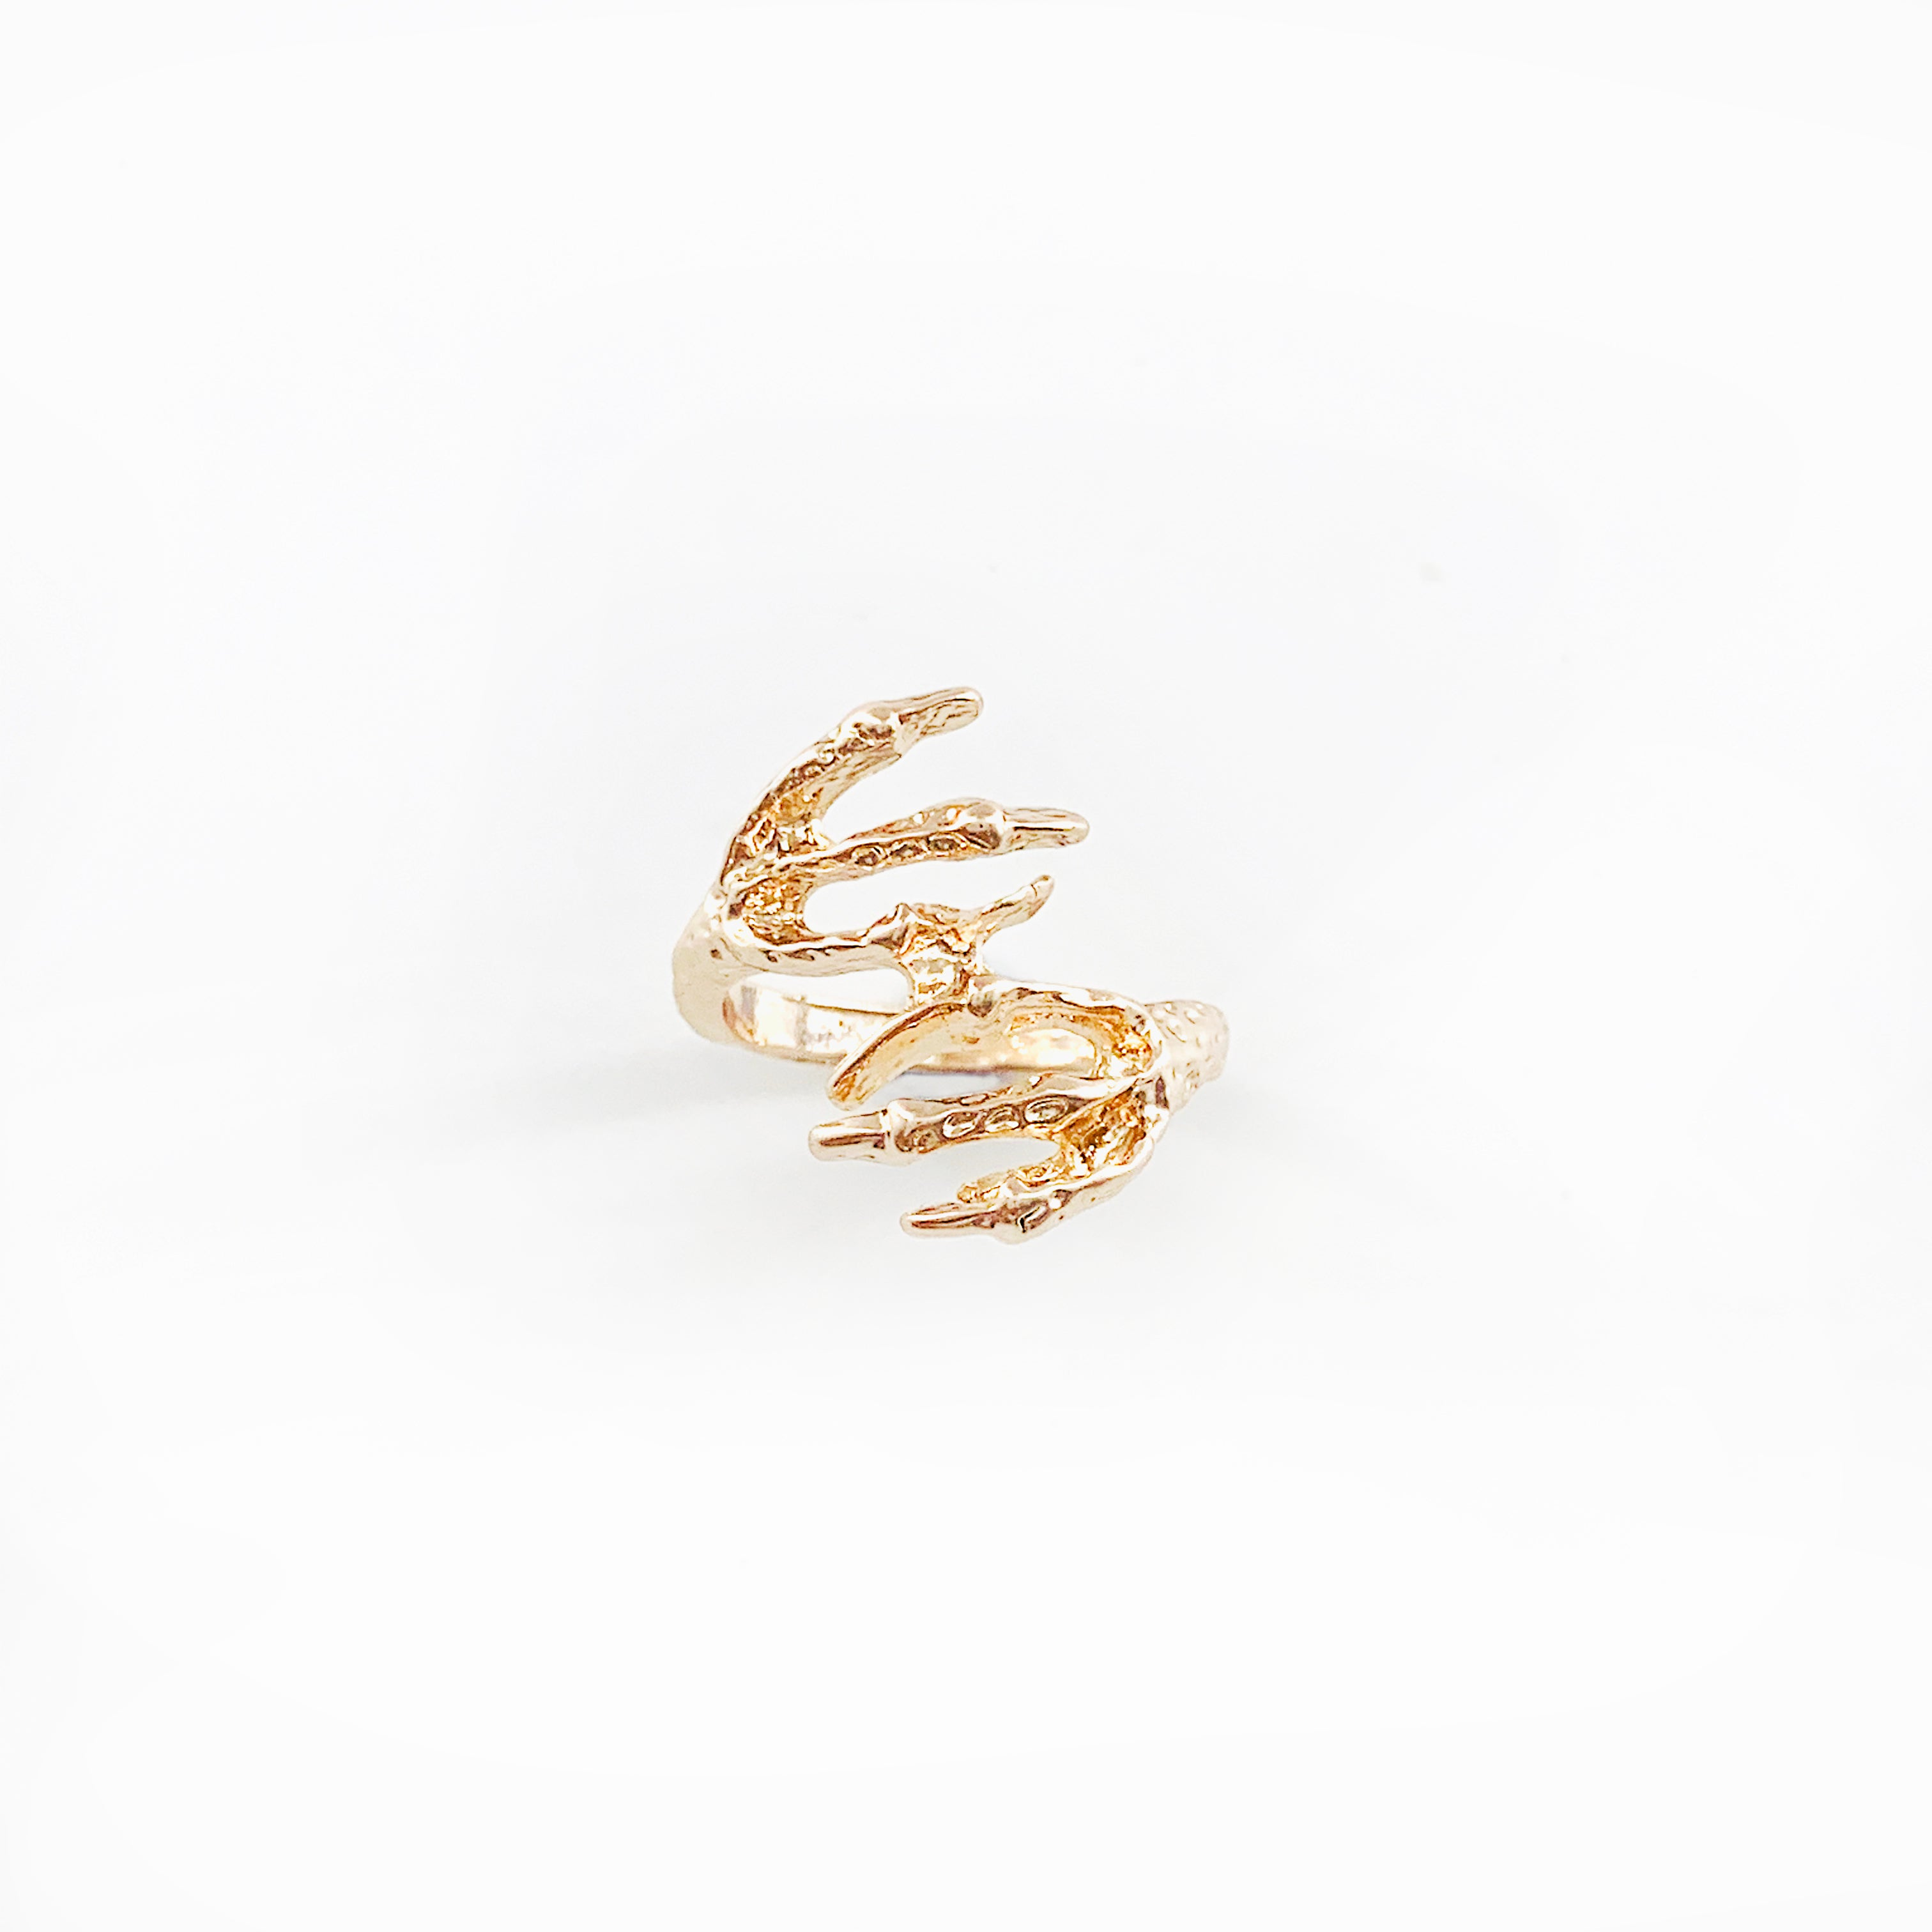 Rose gold claw ring